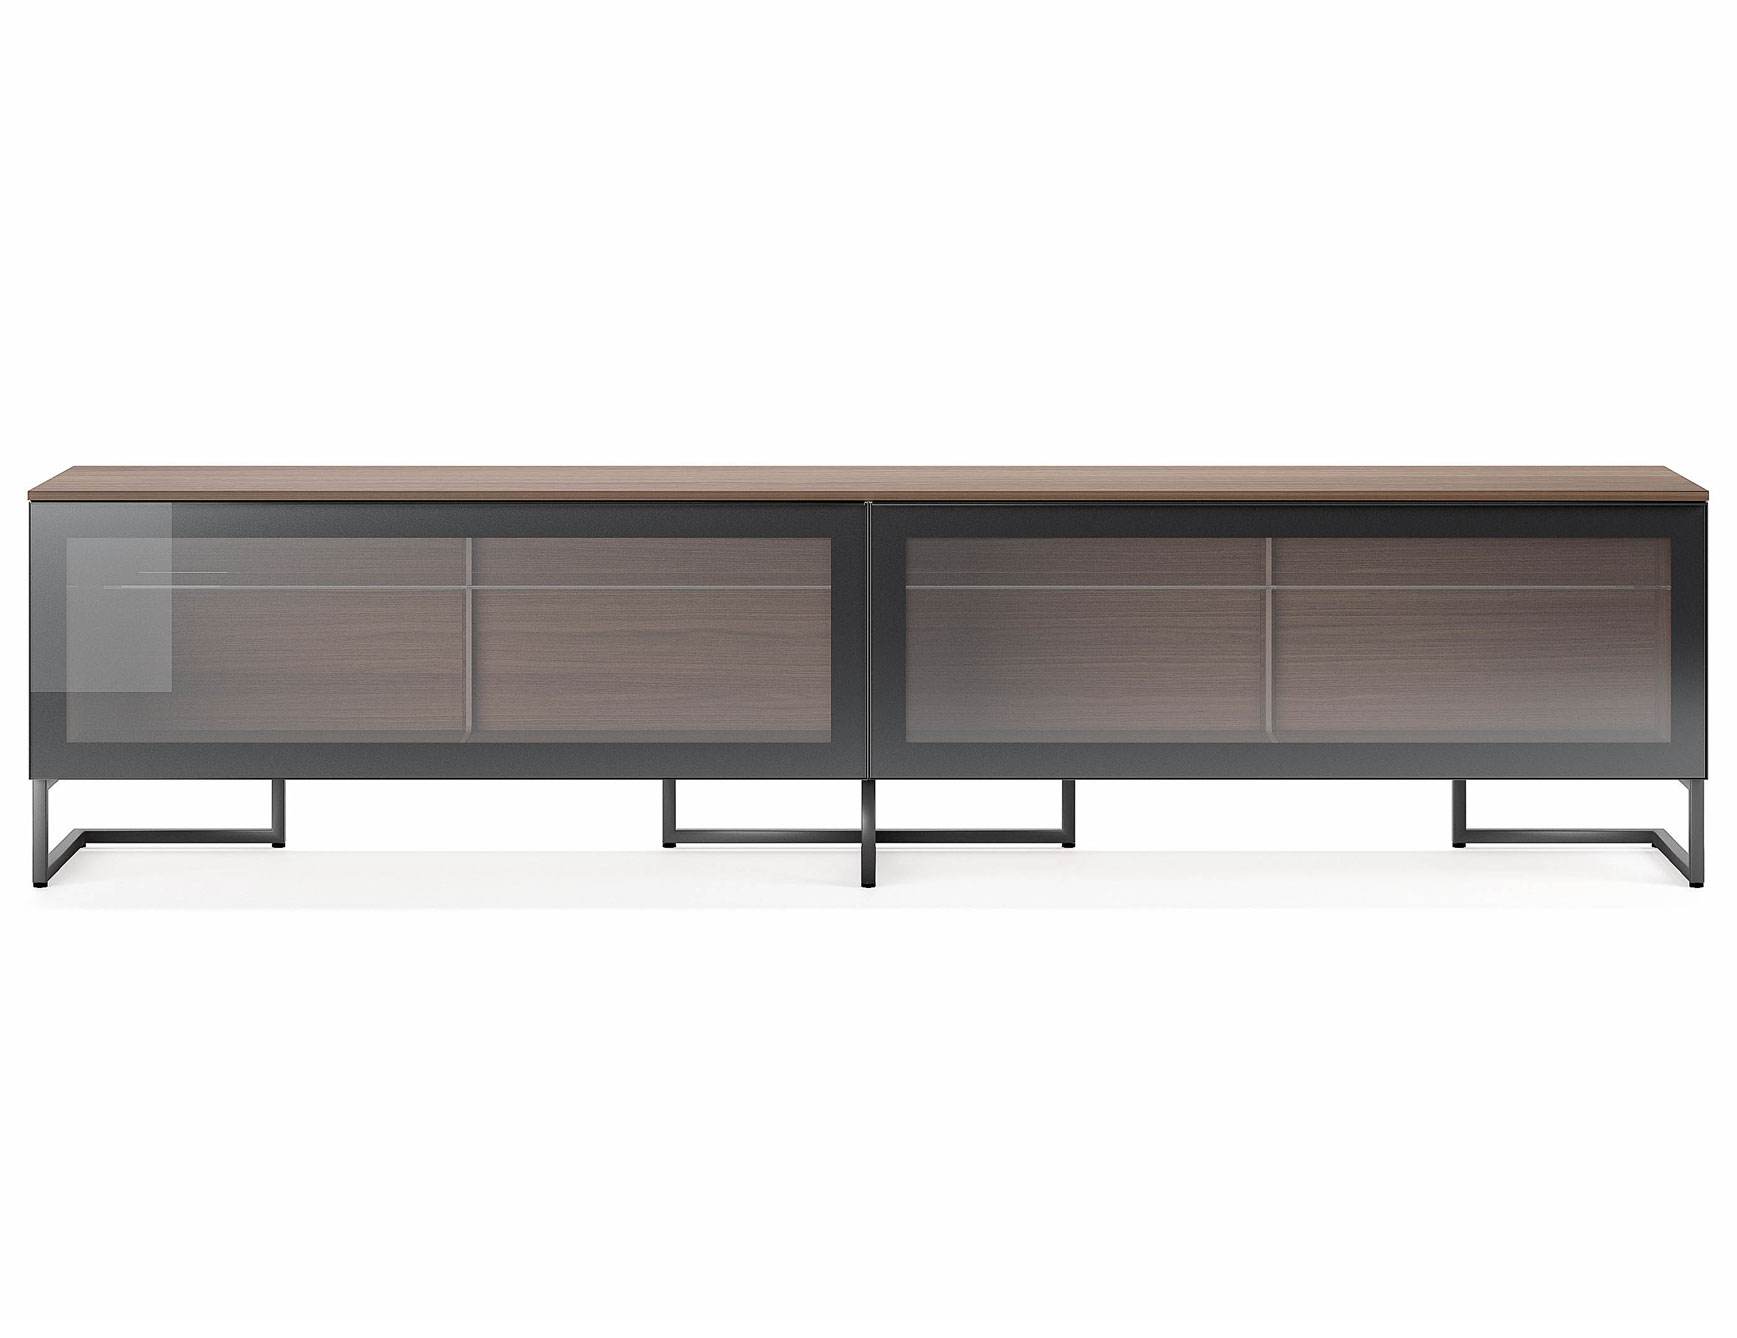 Nella Vetrina Pianca Spazio Sgm240 Contemporary Italian Tv Unit In For Burnt Oak Metal Sideboards (Photo 15 of 30)